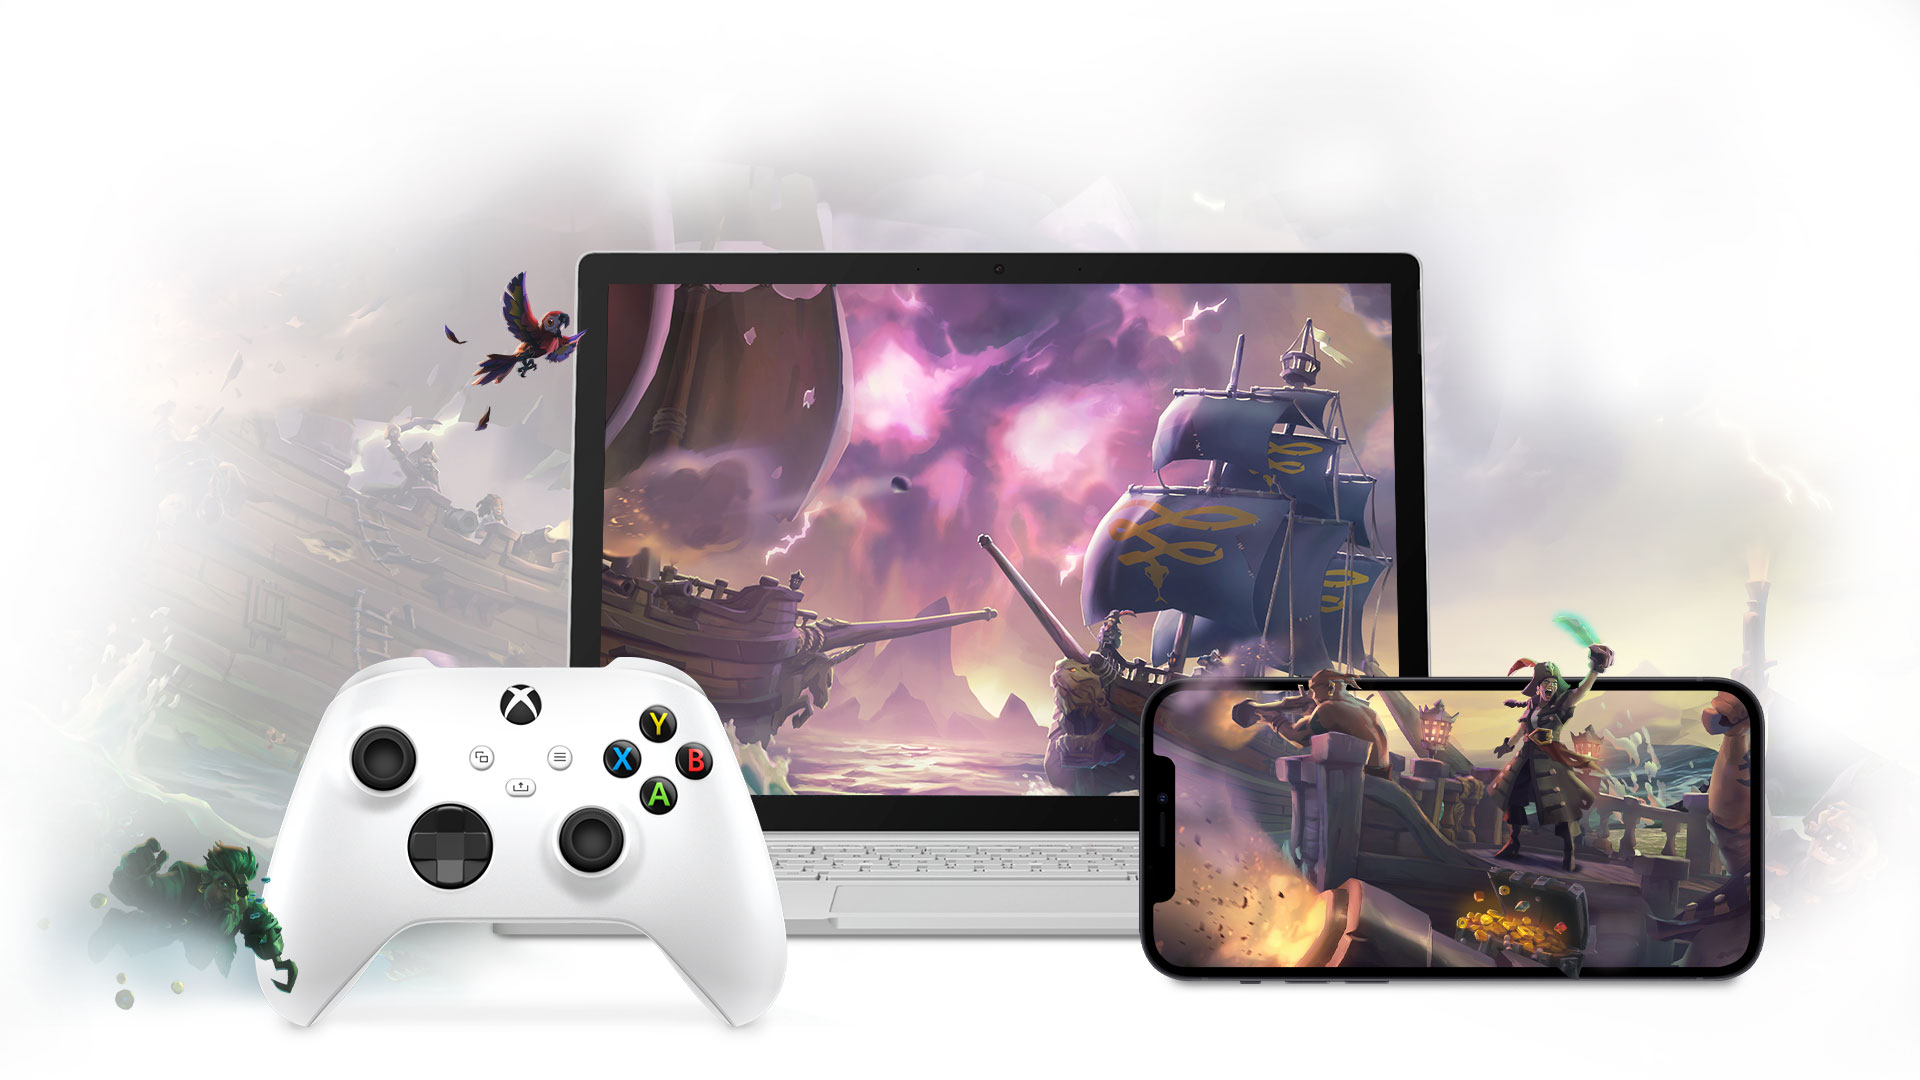 Sea of Thieves. Two pirate ships clash across the screens of a Surface Book and an Apple mobile phone. An Xbox Wireless Controller sits in front of the Surface Book.